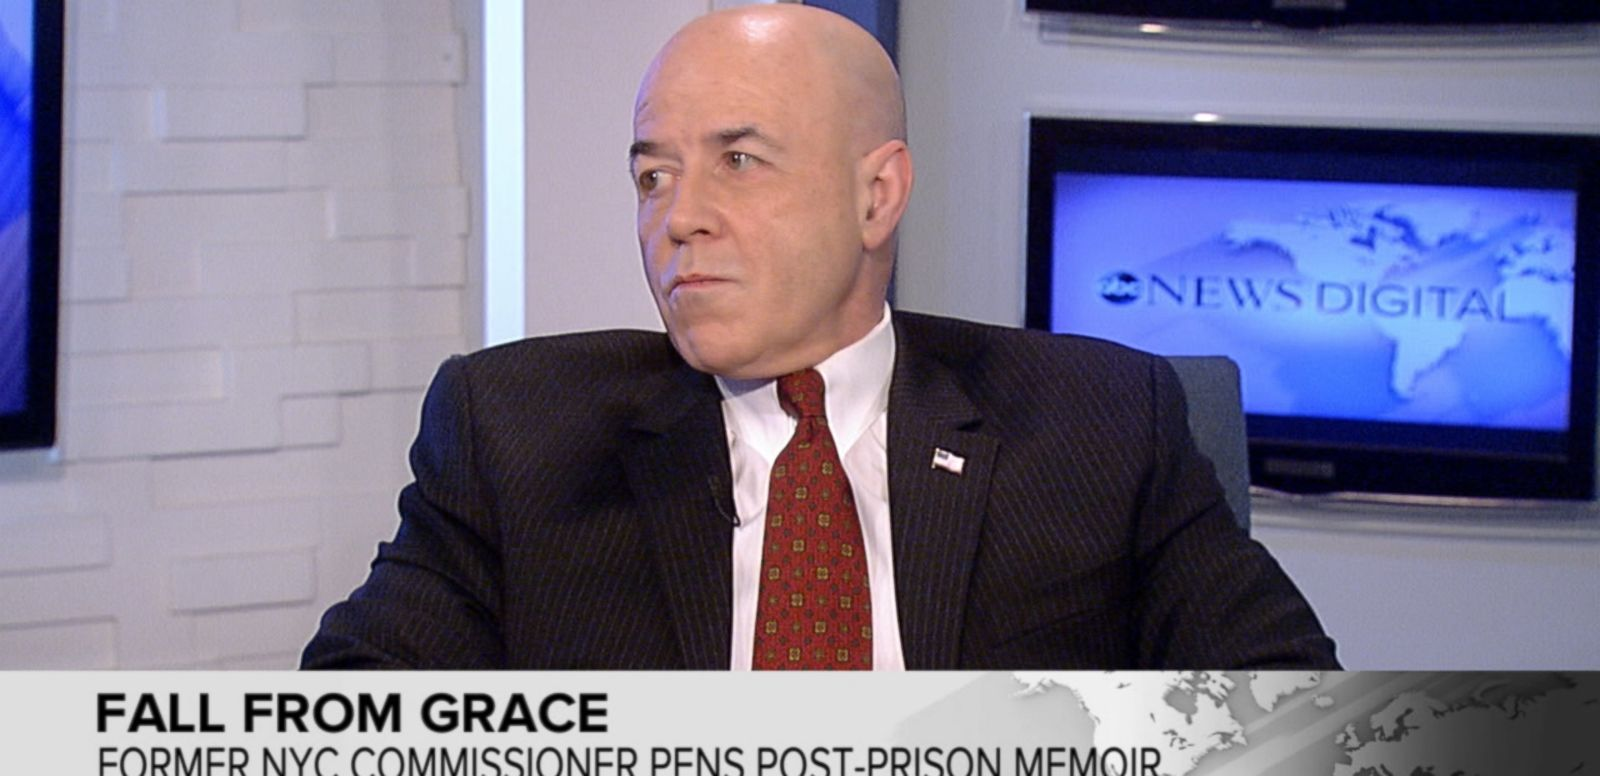 VIDEO: Bernard Kerik's Journey from Jailer to the Jailed